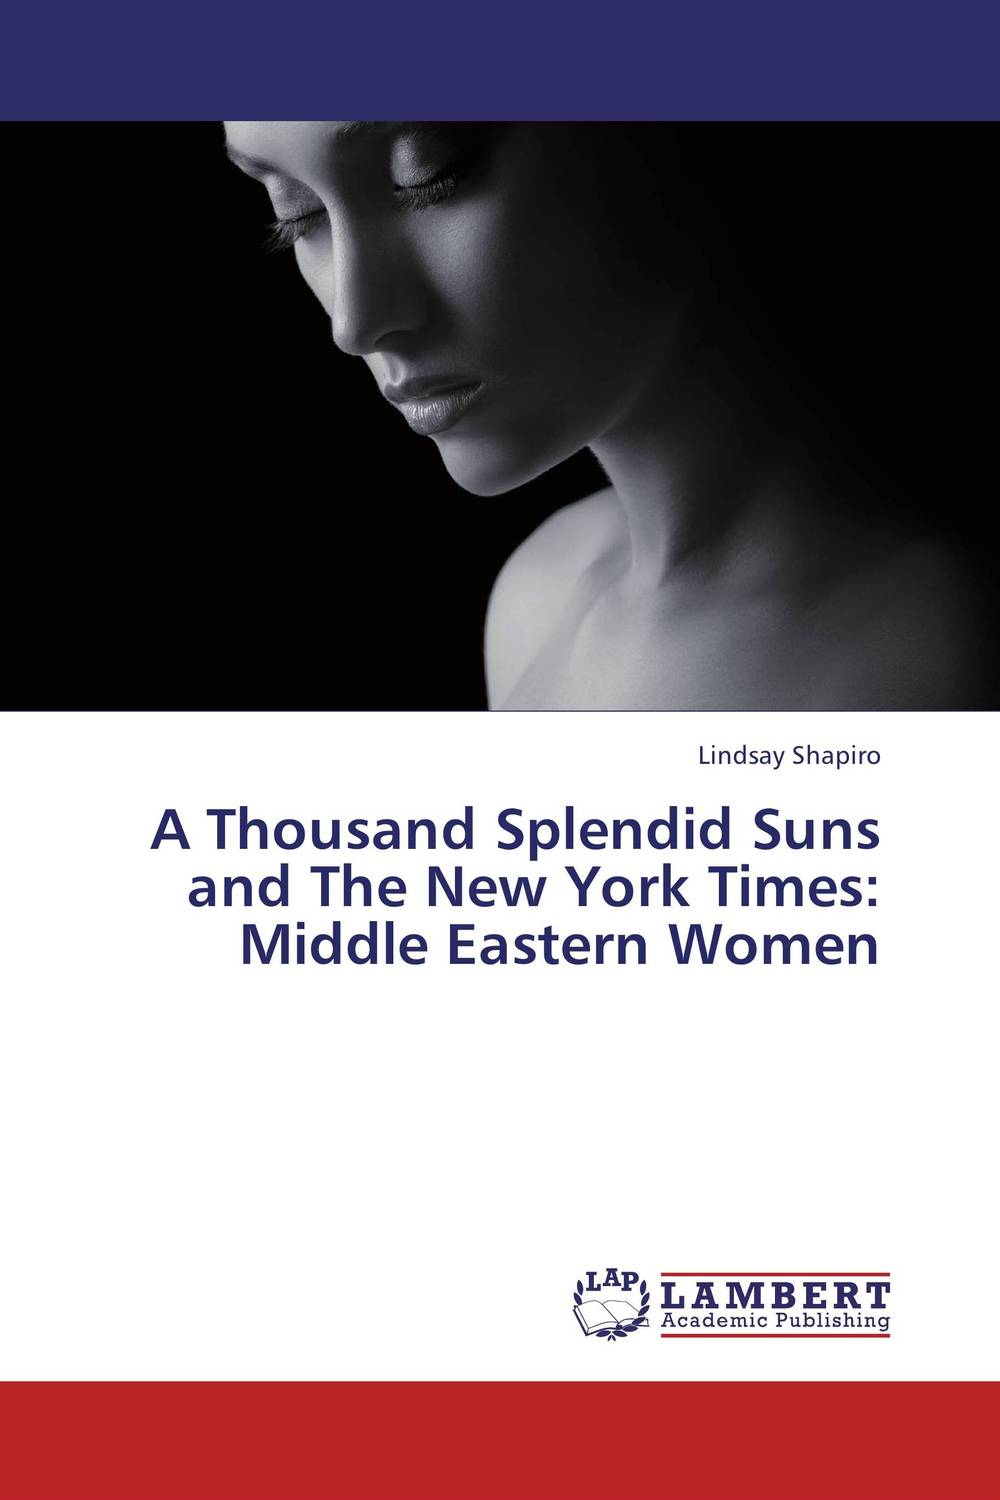 A Thousand Splendid Suns and The New York Times: Middle Eastern Women телевизор samsung ue43m5550 43 дюйма smart tv full hd